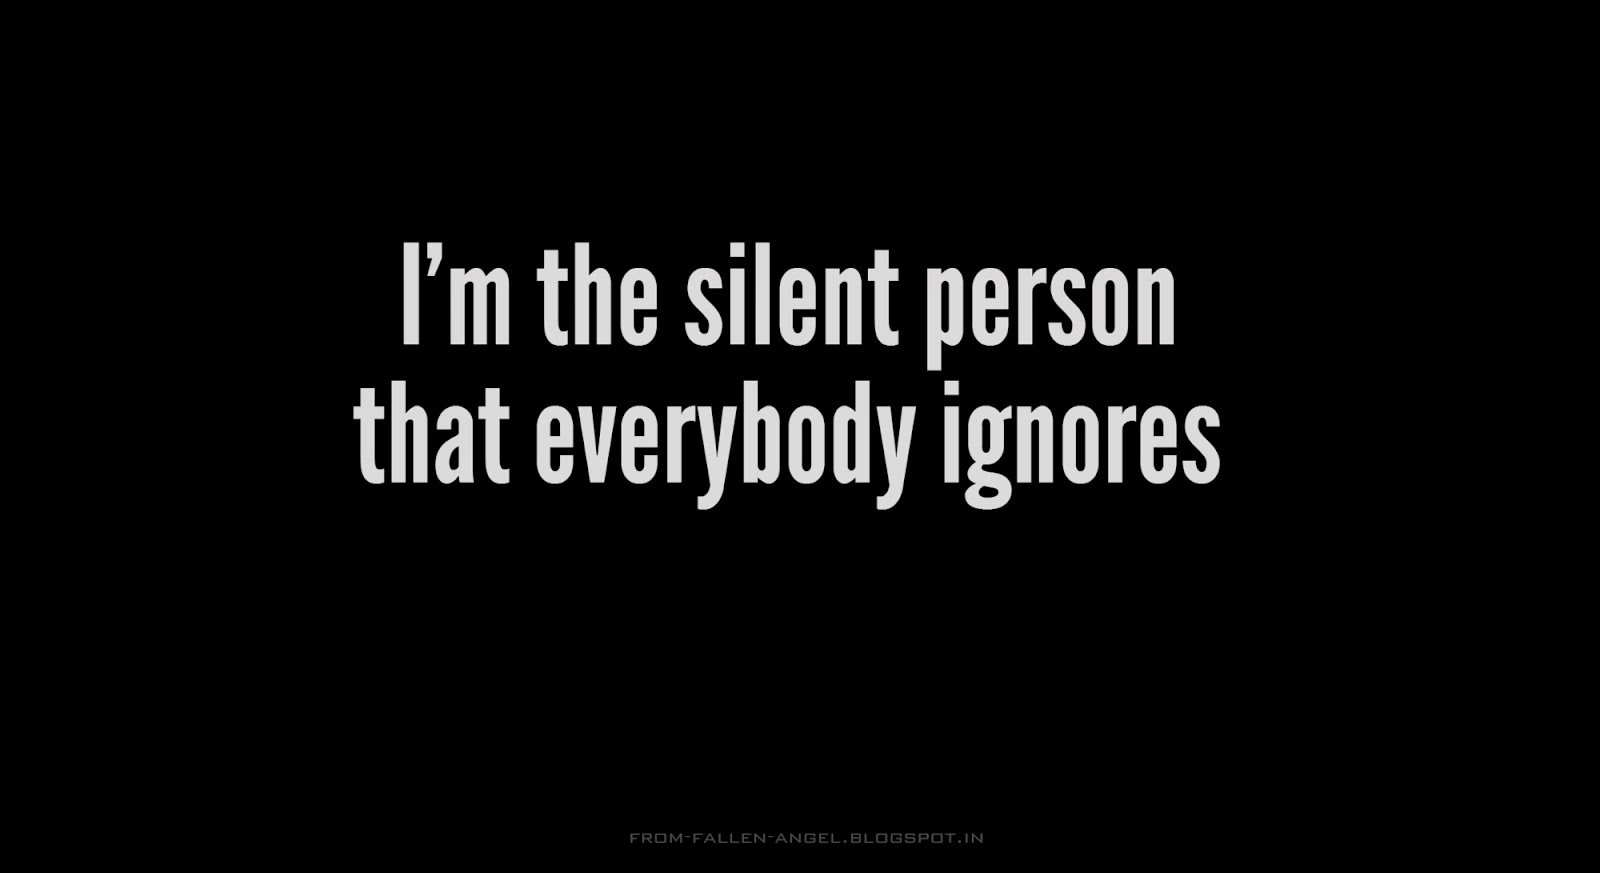 I'm the silent person that everybody ignores